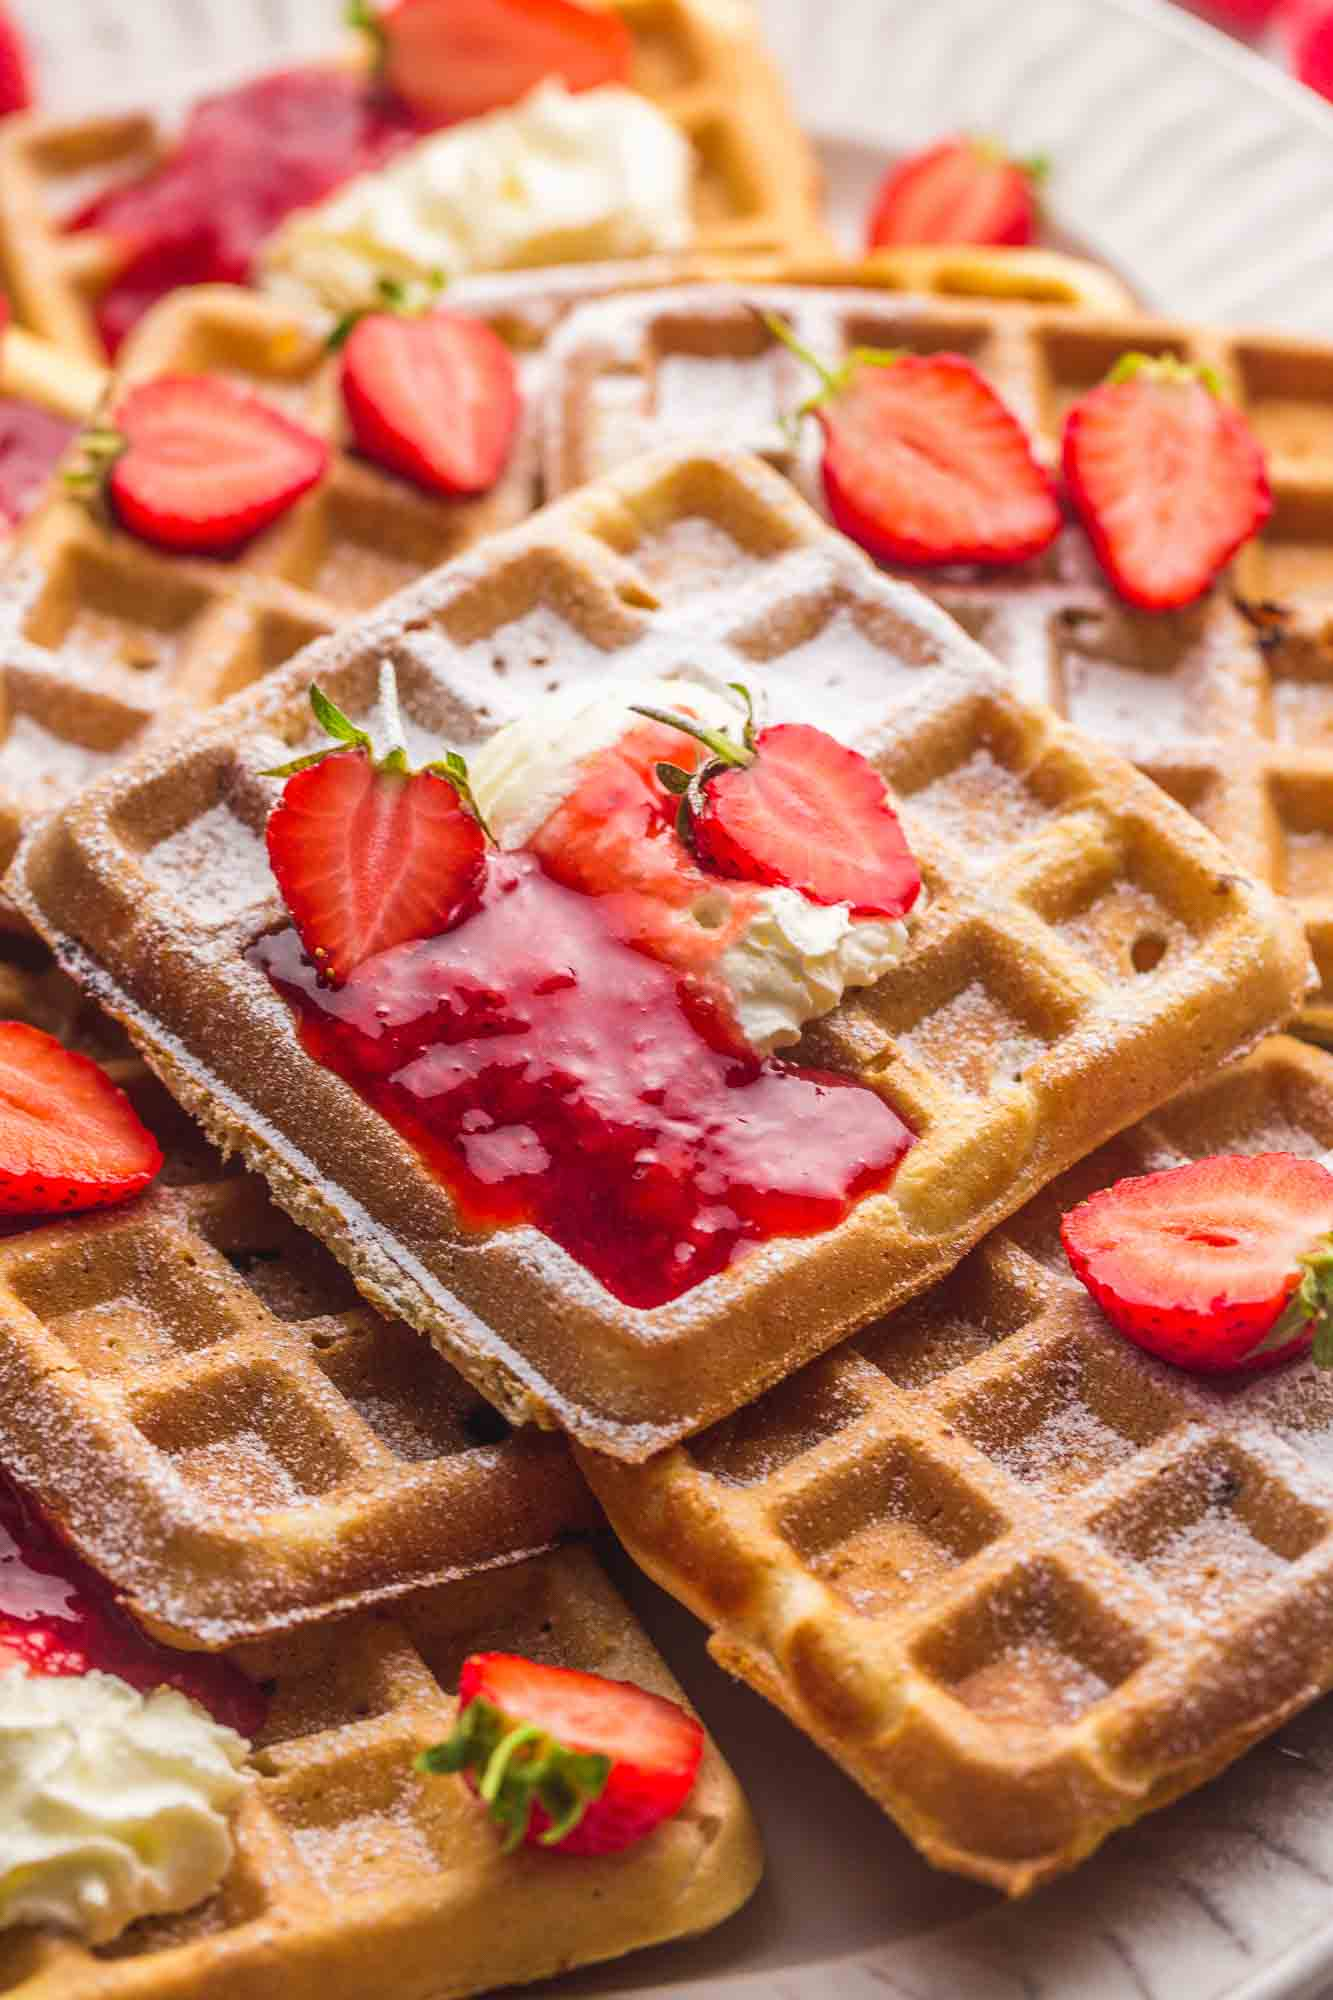 Strawberry waffles stacked randomly on a platter with strawberry sauce and fresh strawberries